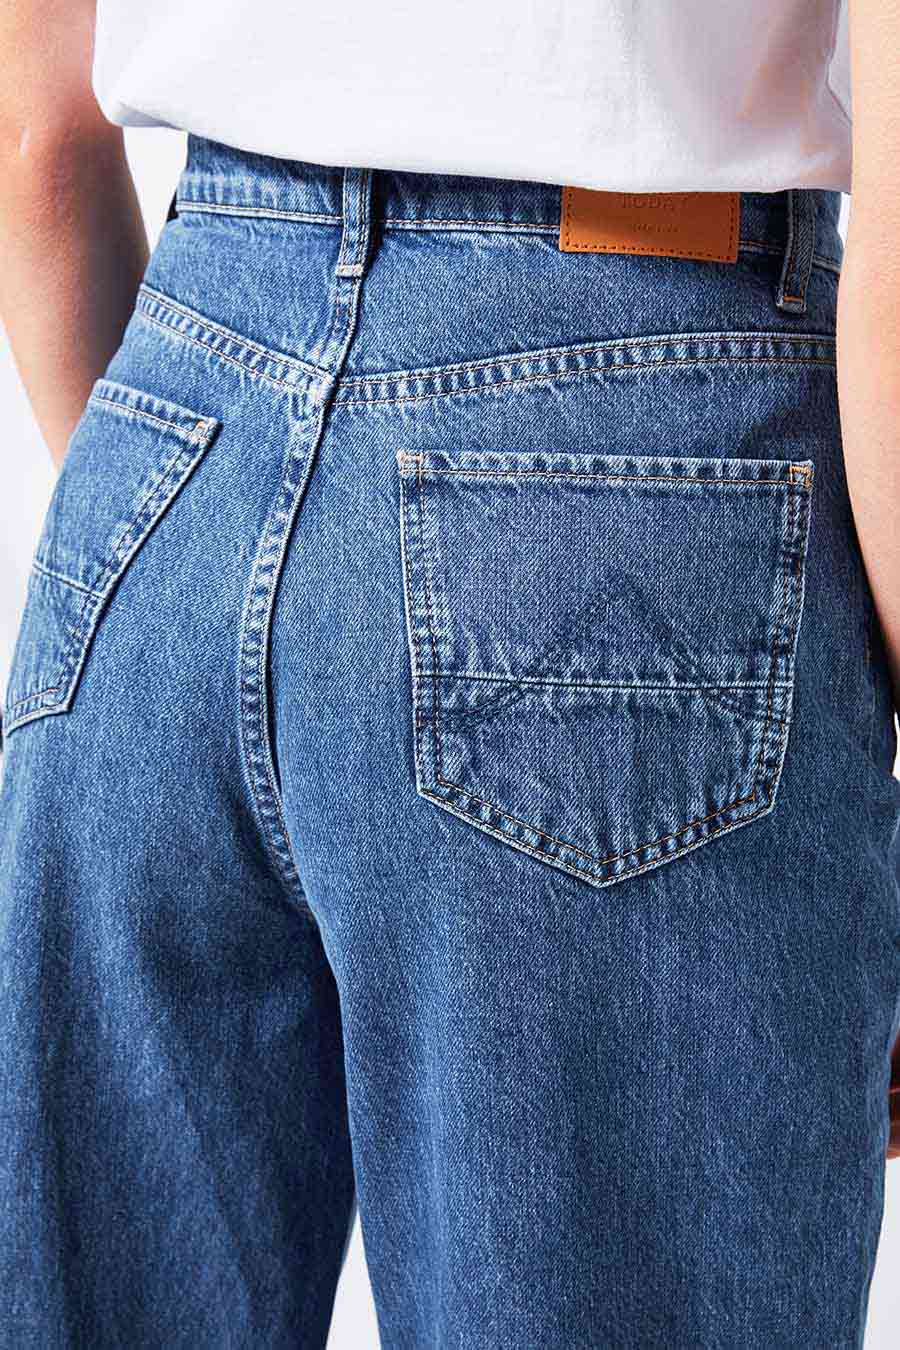 mary women Jeans